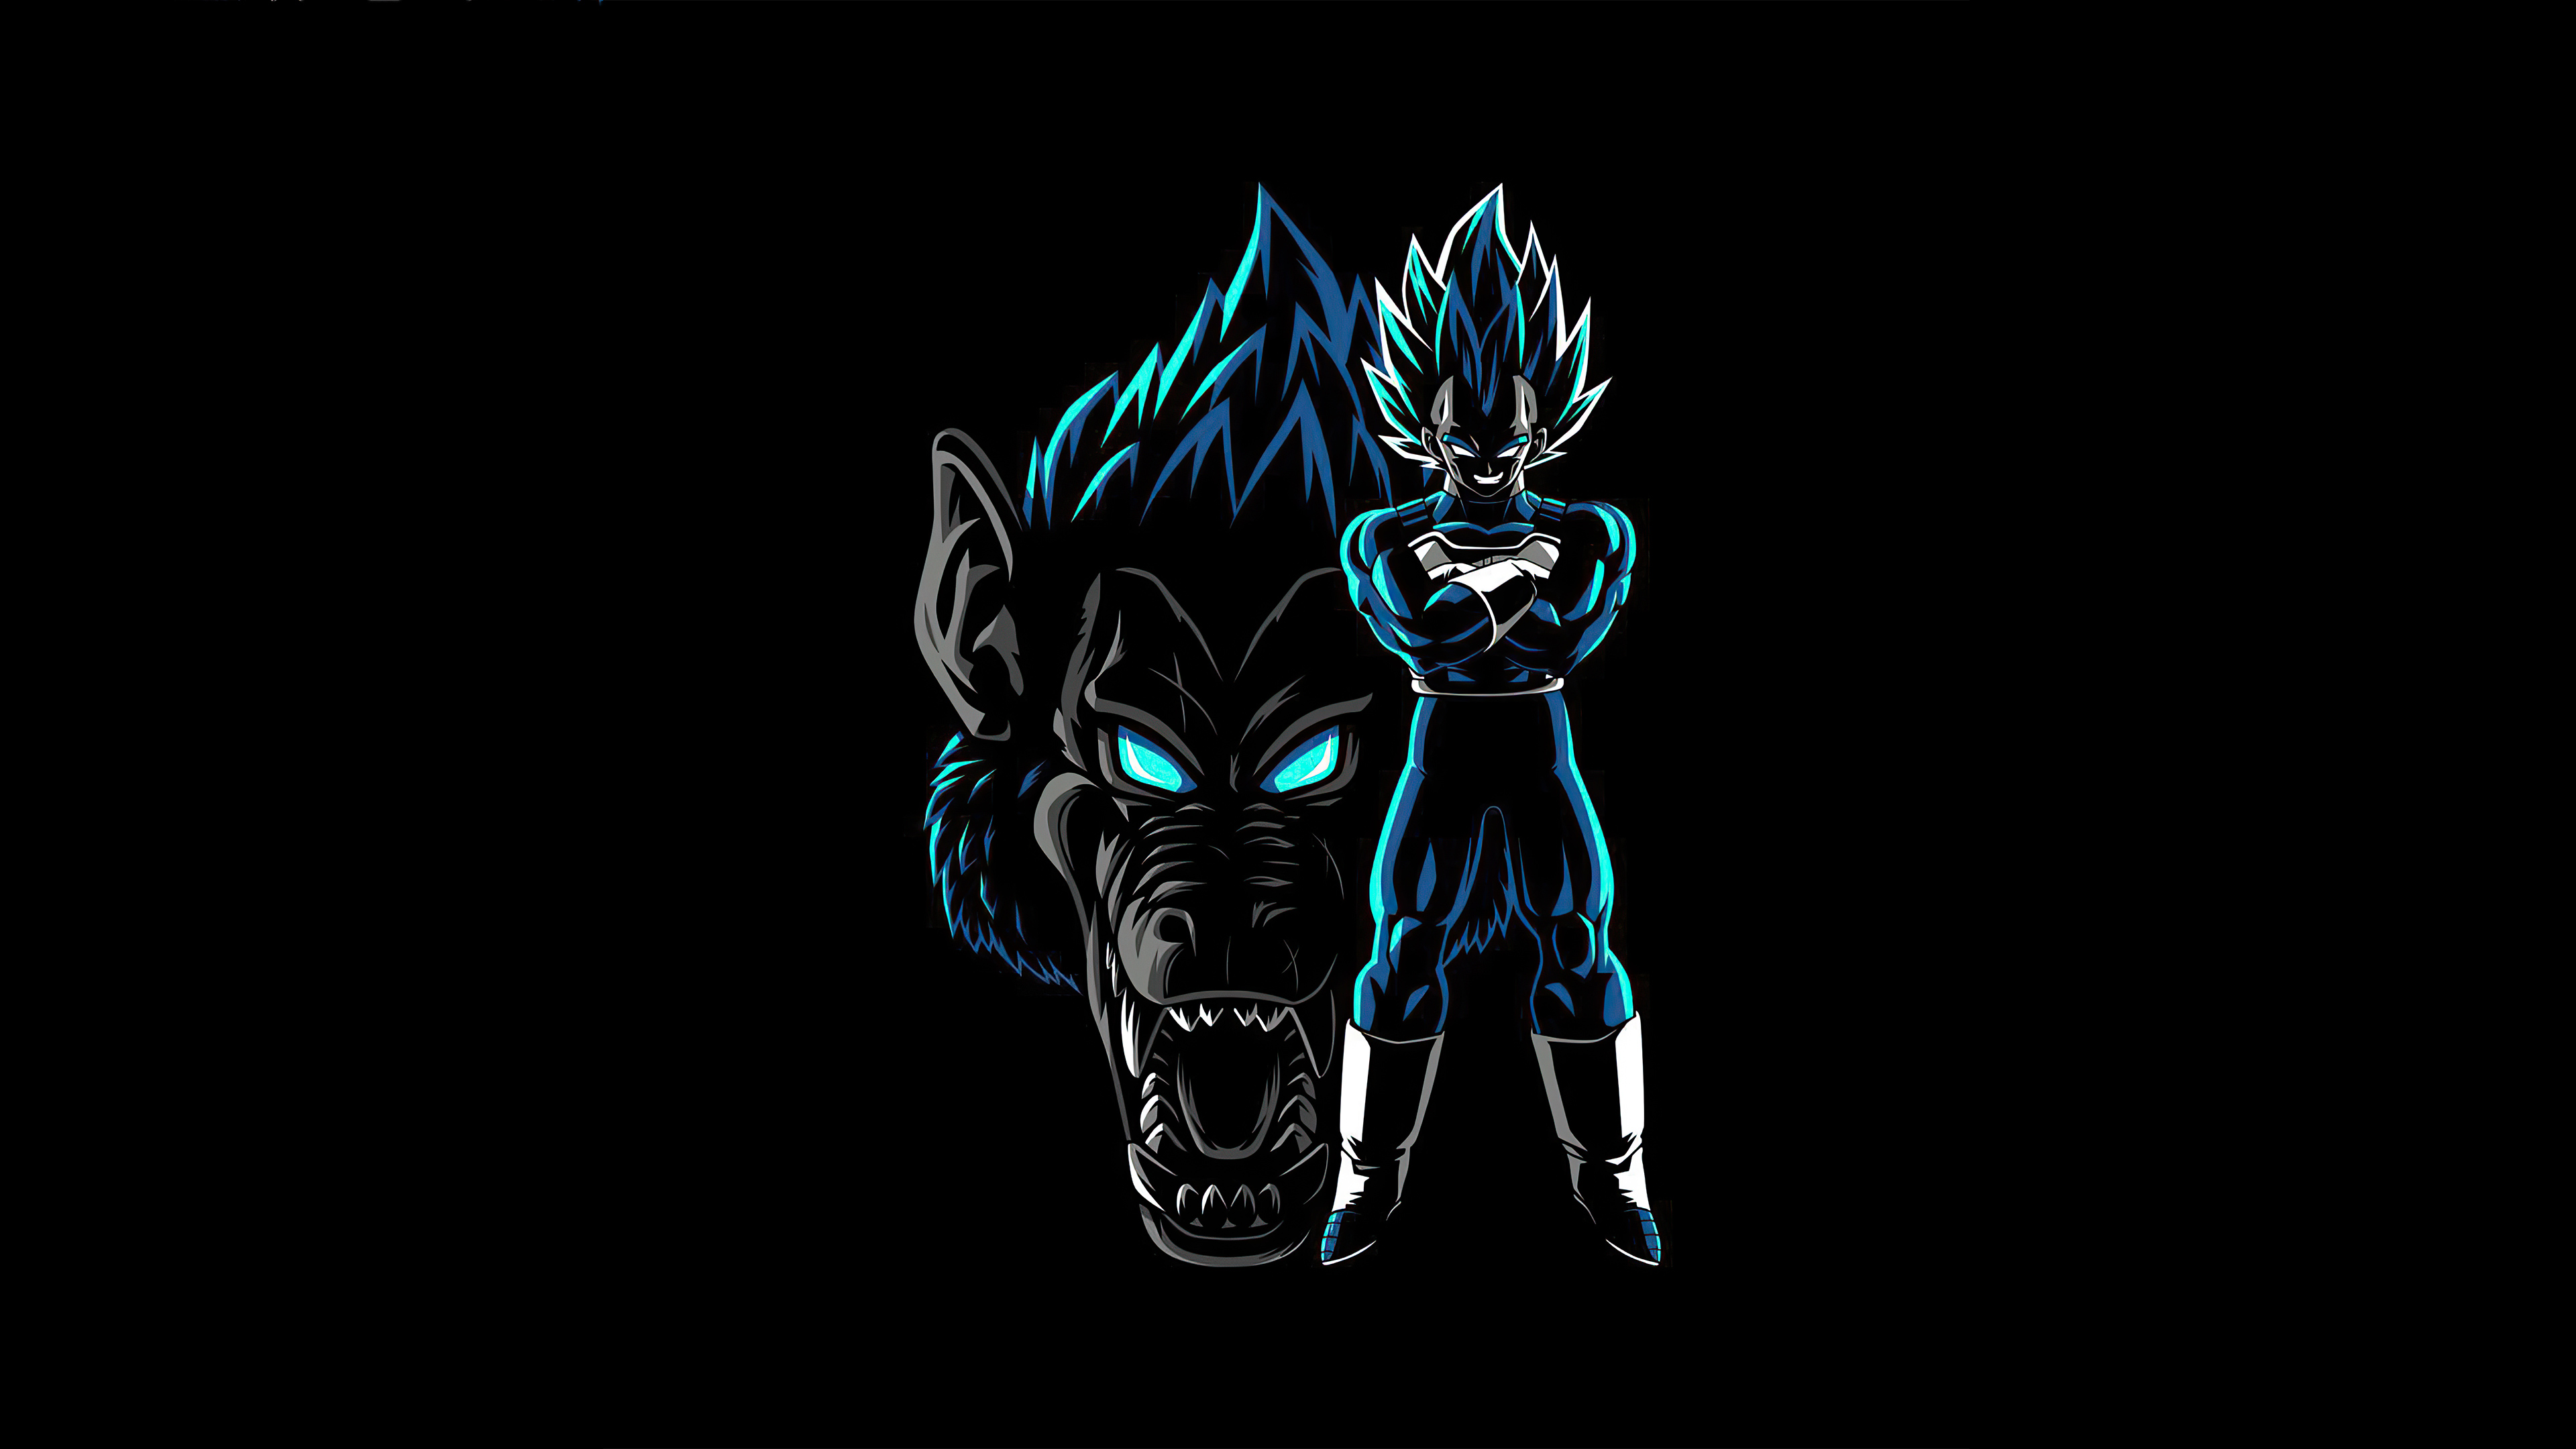 1280x1024 Dragon Ball Z Ozaru Vegeta Blue 4k 1280x1024 Resolution Hd 4k Wallpapers Images Backgrounds Photos And Pictures